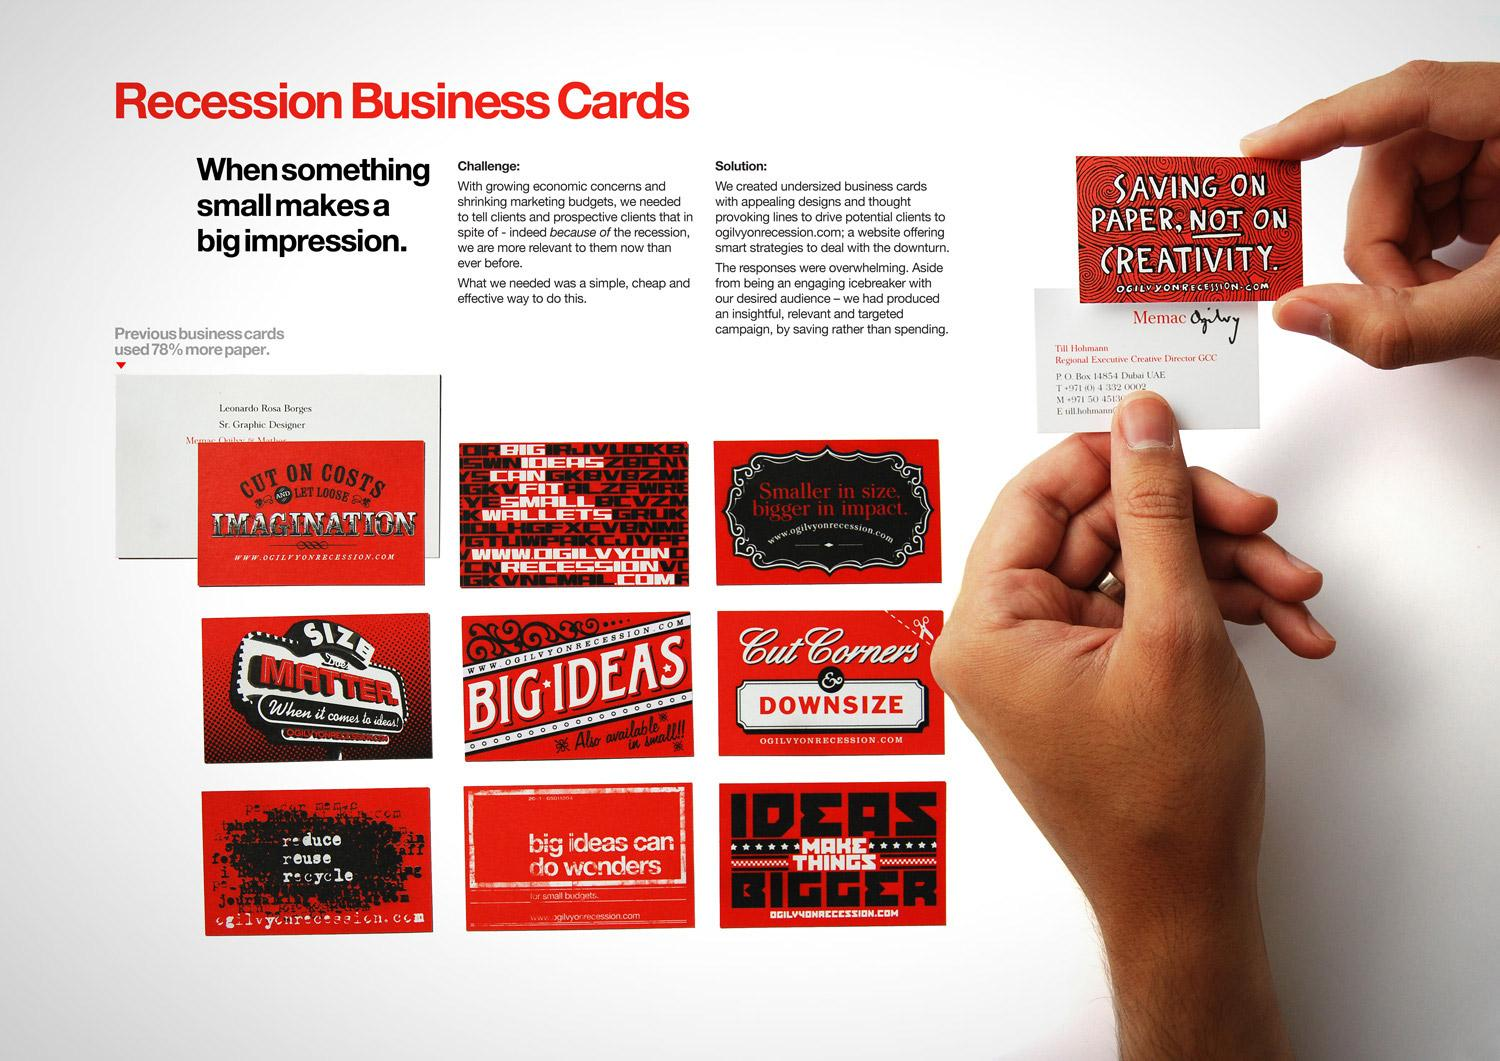 Ogilvy Direct Advert By Ogilvy: Recession business cards | Ads of ...